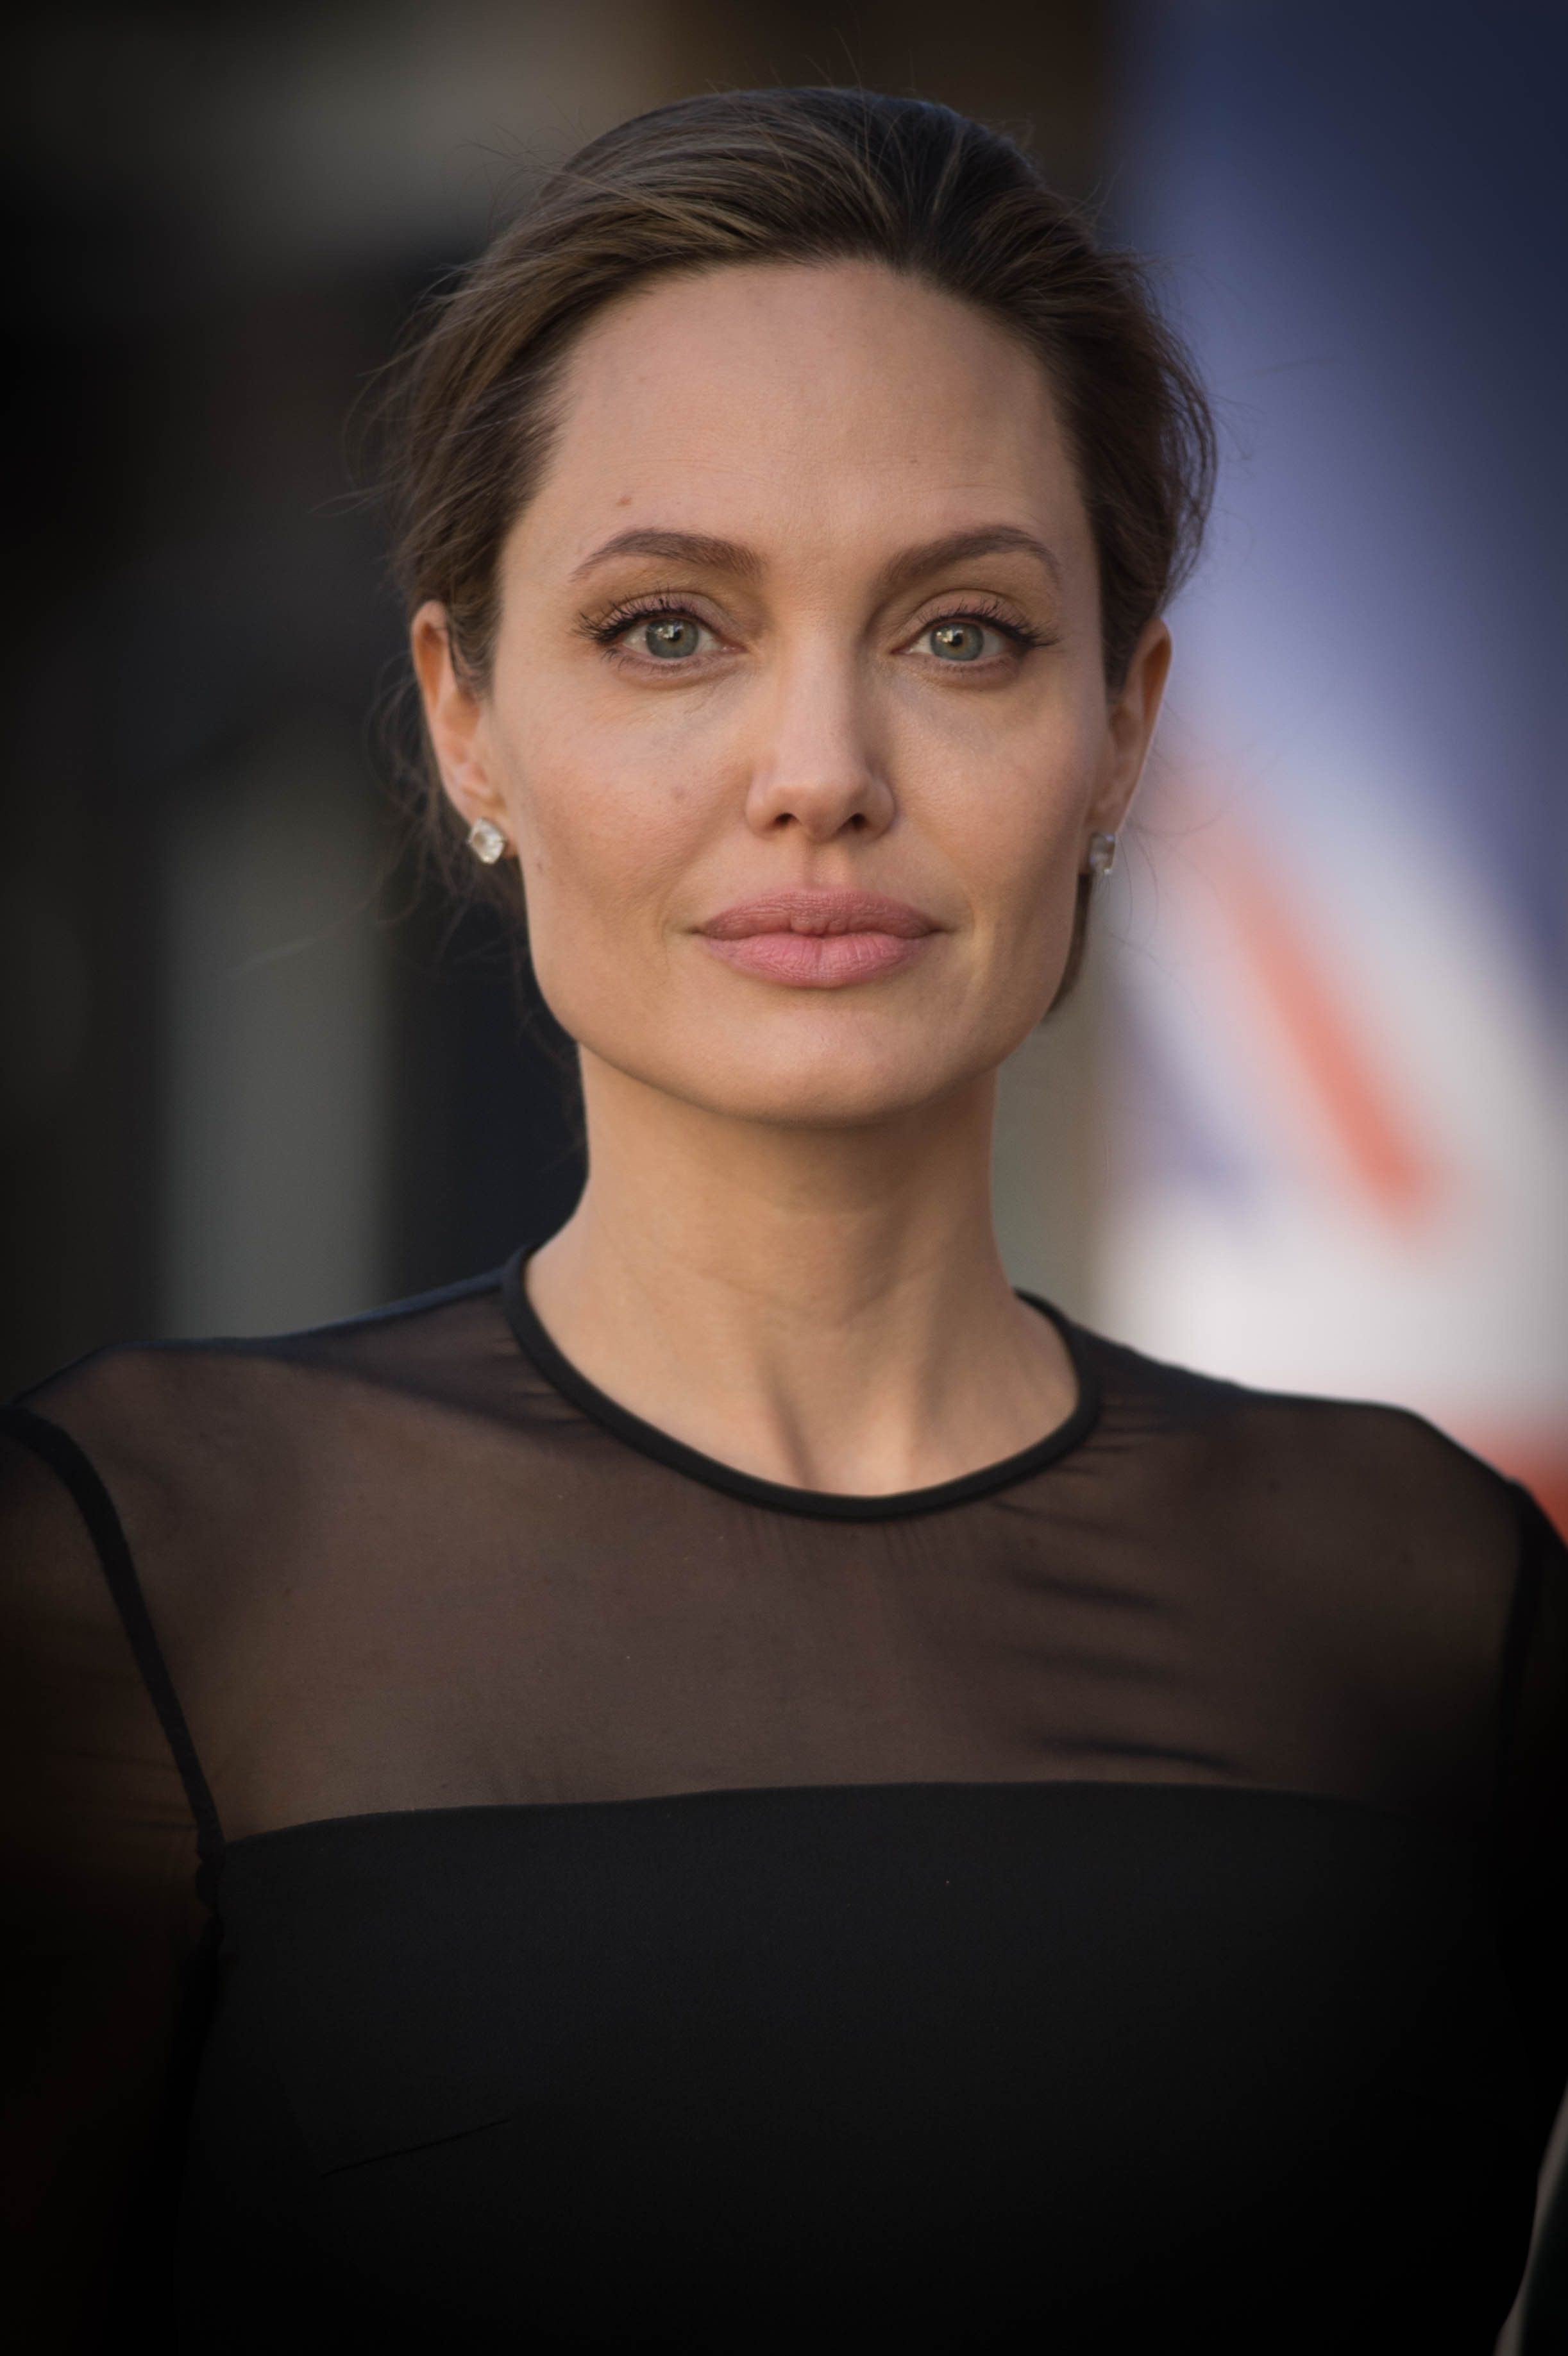 Angelina Jolie Finally Breaks Her Silence On Brad Pitt